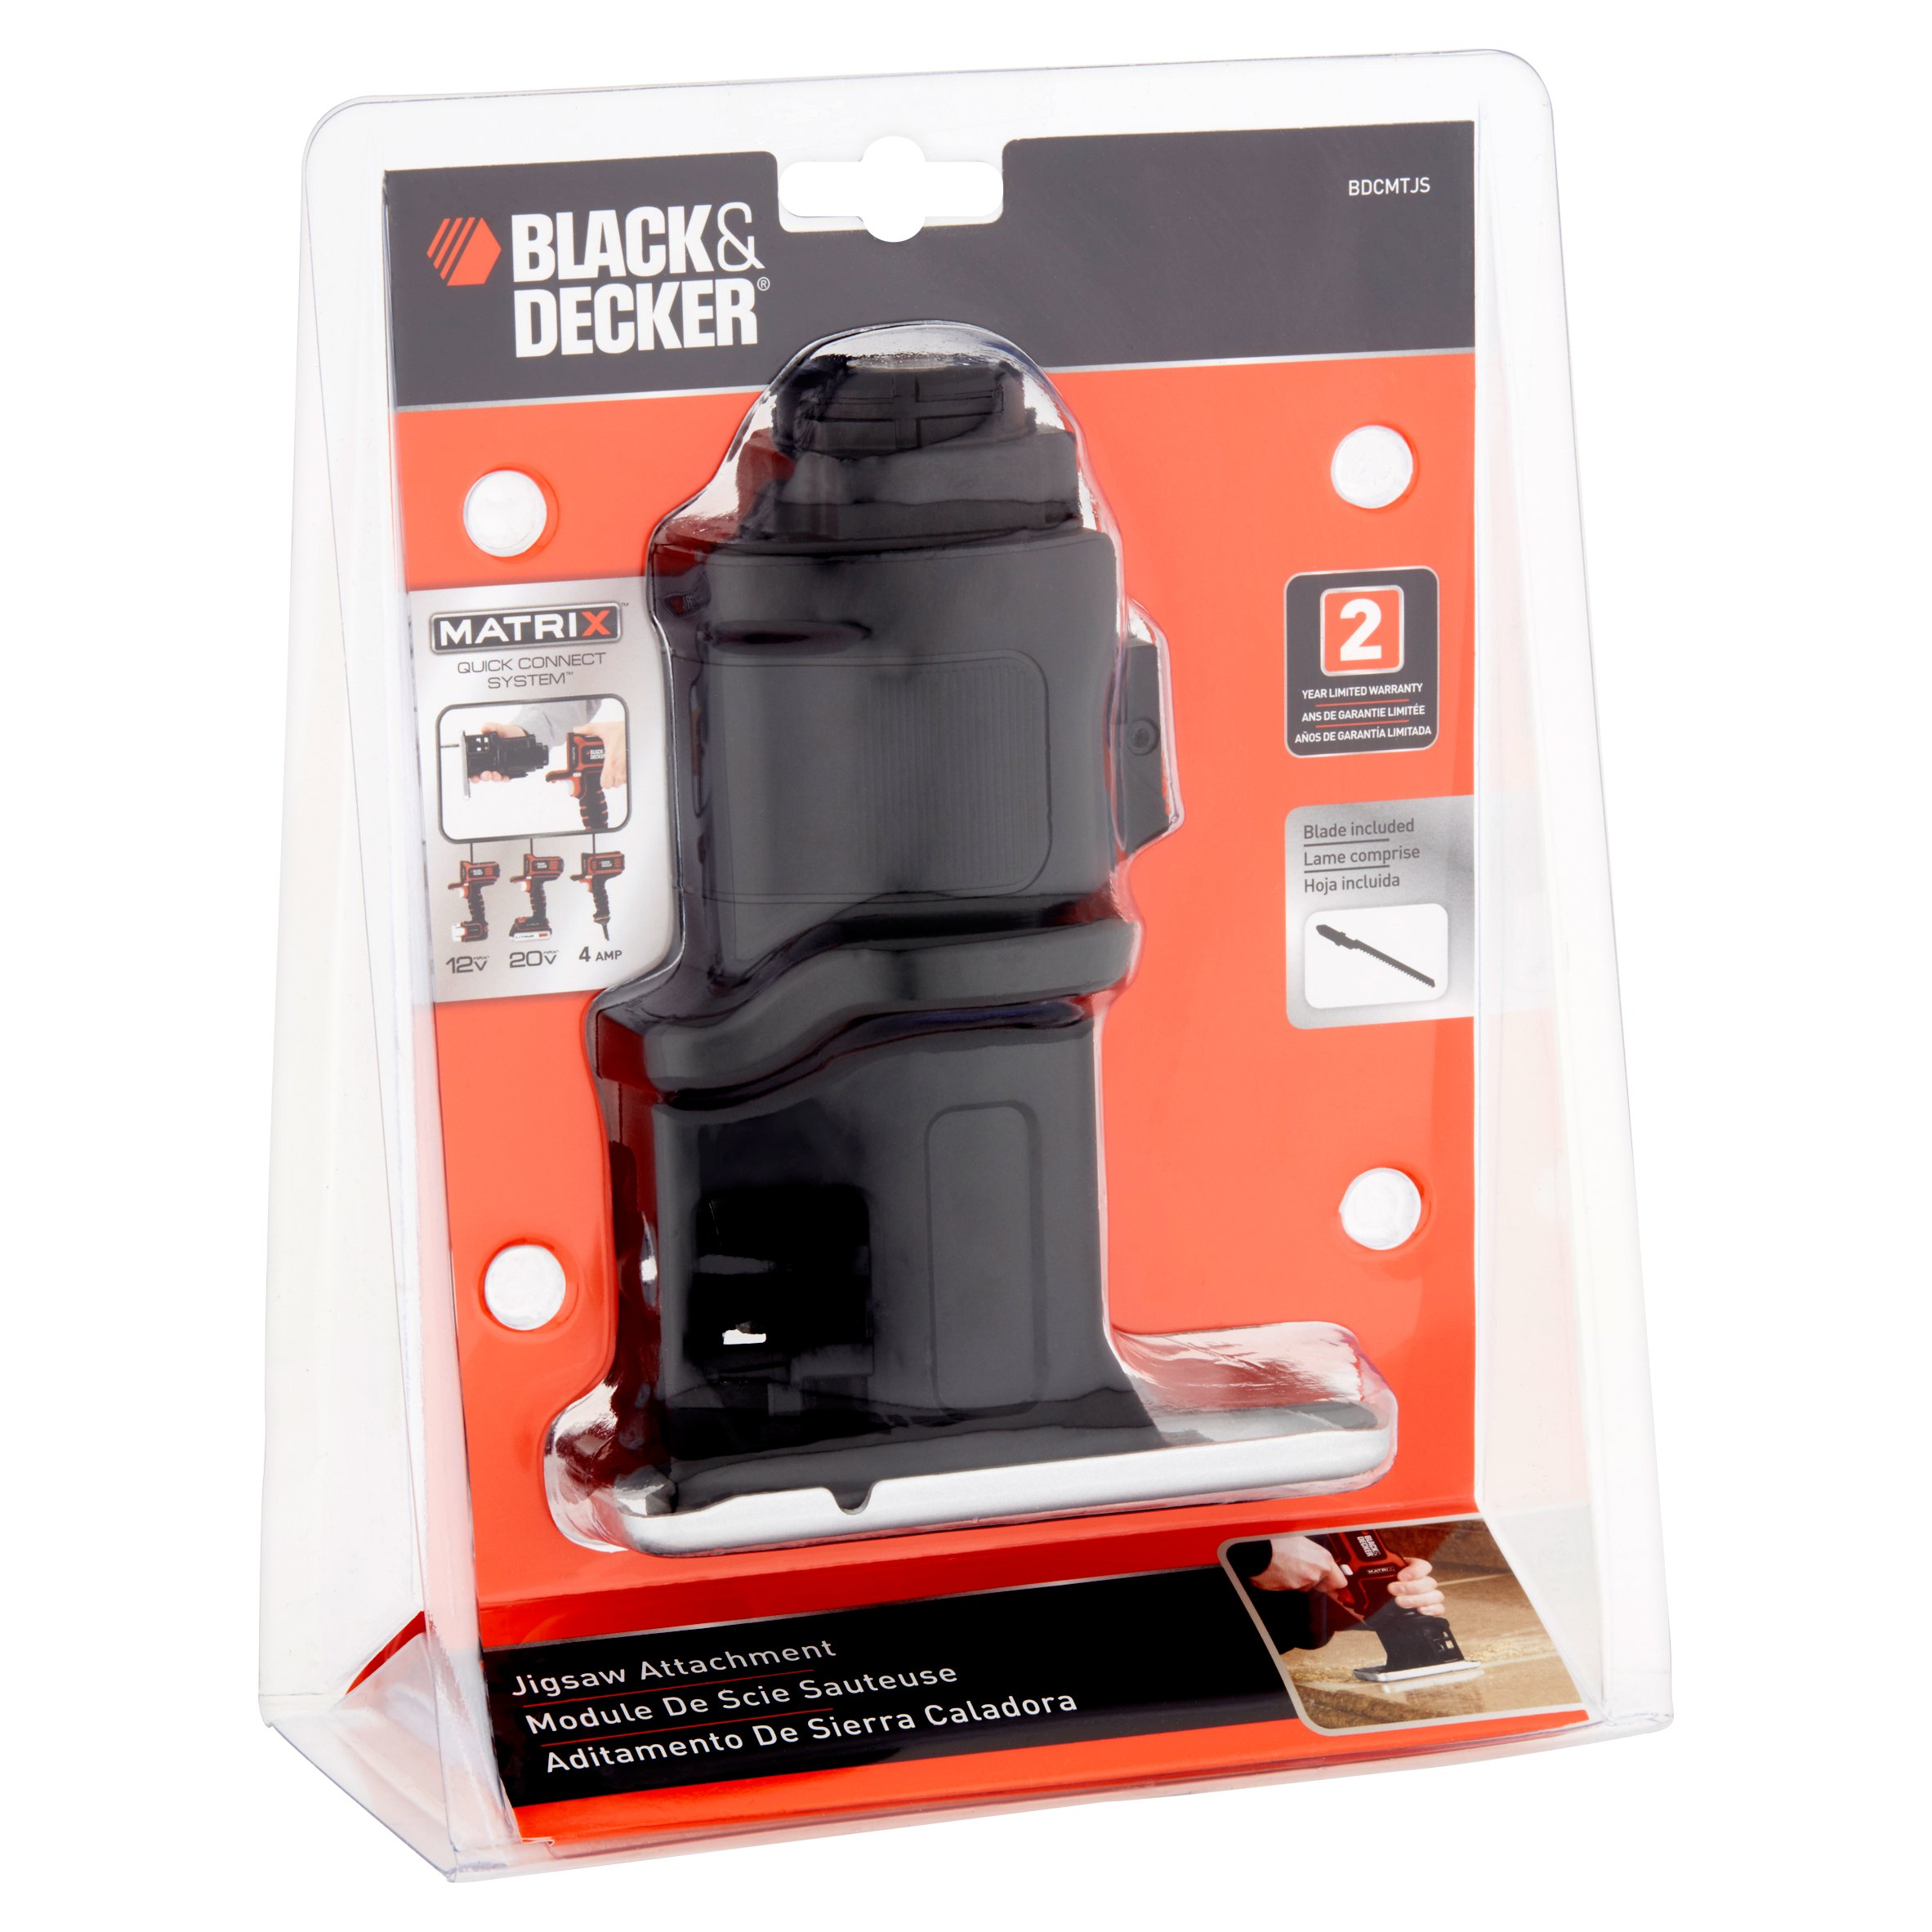 How to put a blade in a black and decker jigsaw gallery wiring how to put a blade in a black and decker jigsaw gallery wiring black and decker greentooth Image collections